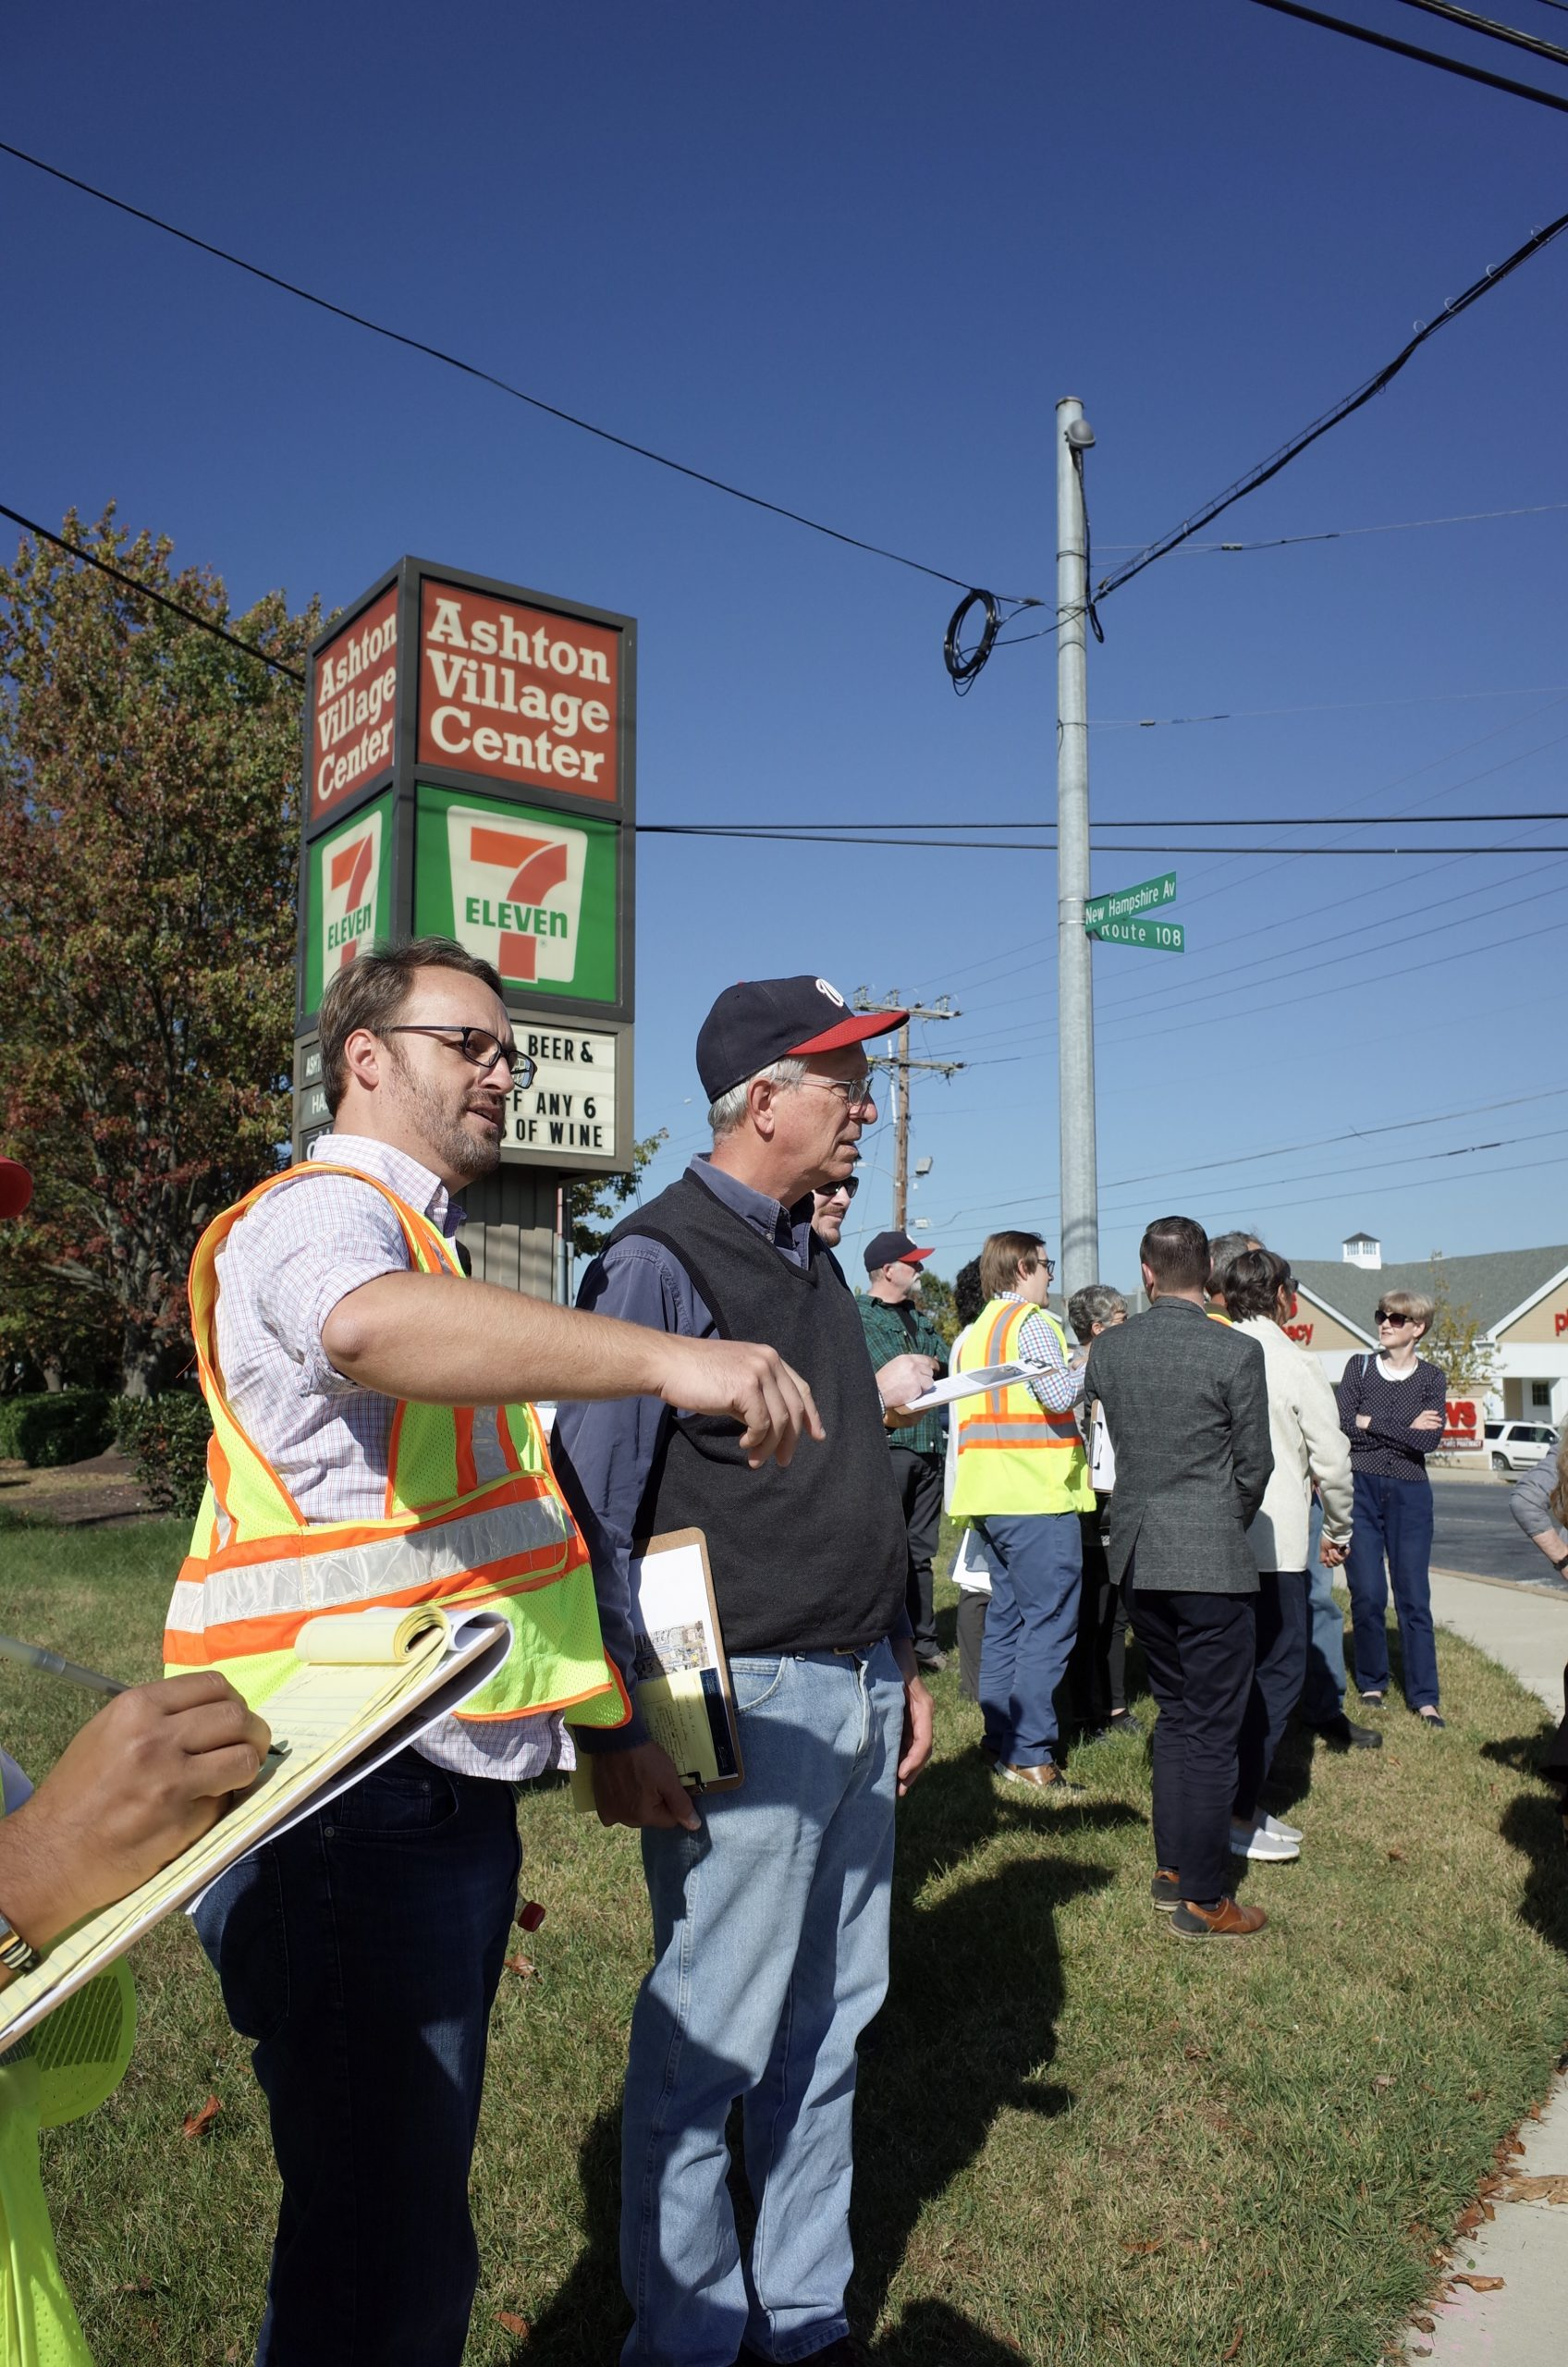 Community members and County staff survey pedestrian conditions in Ashton